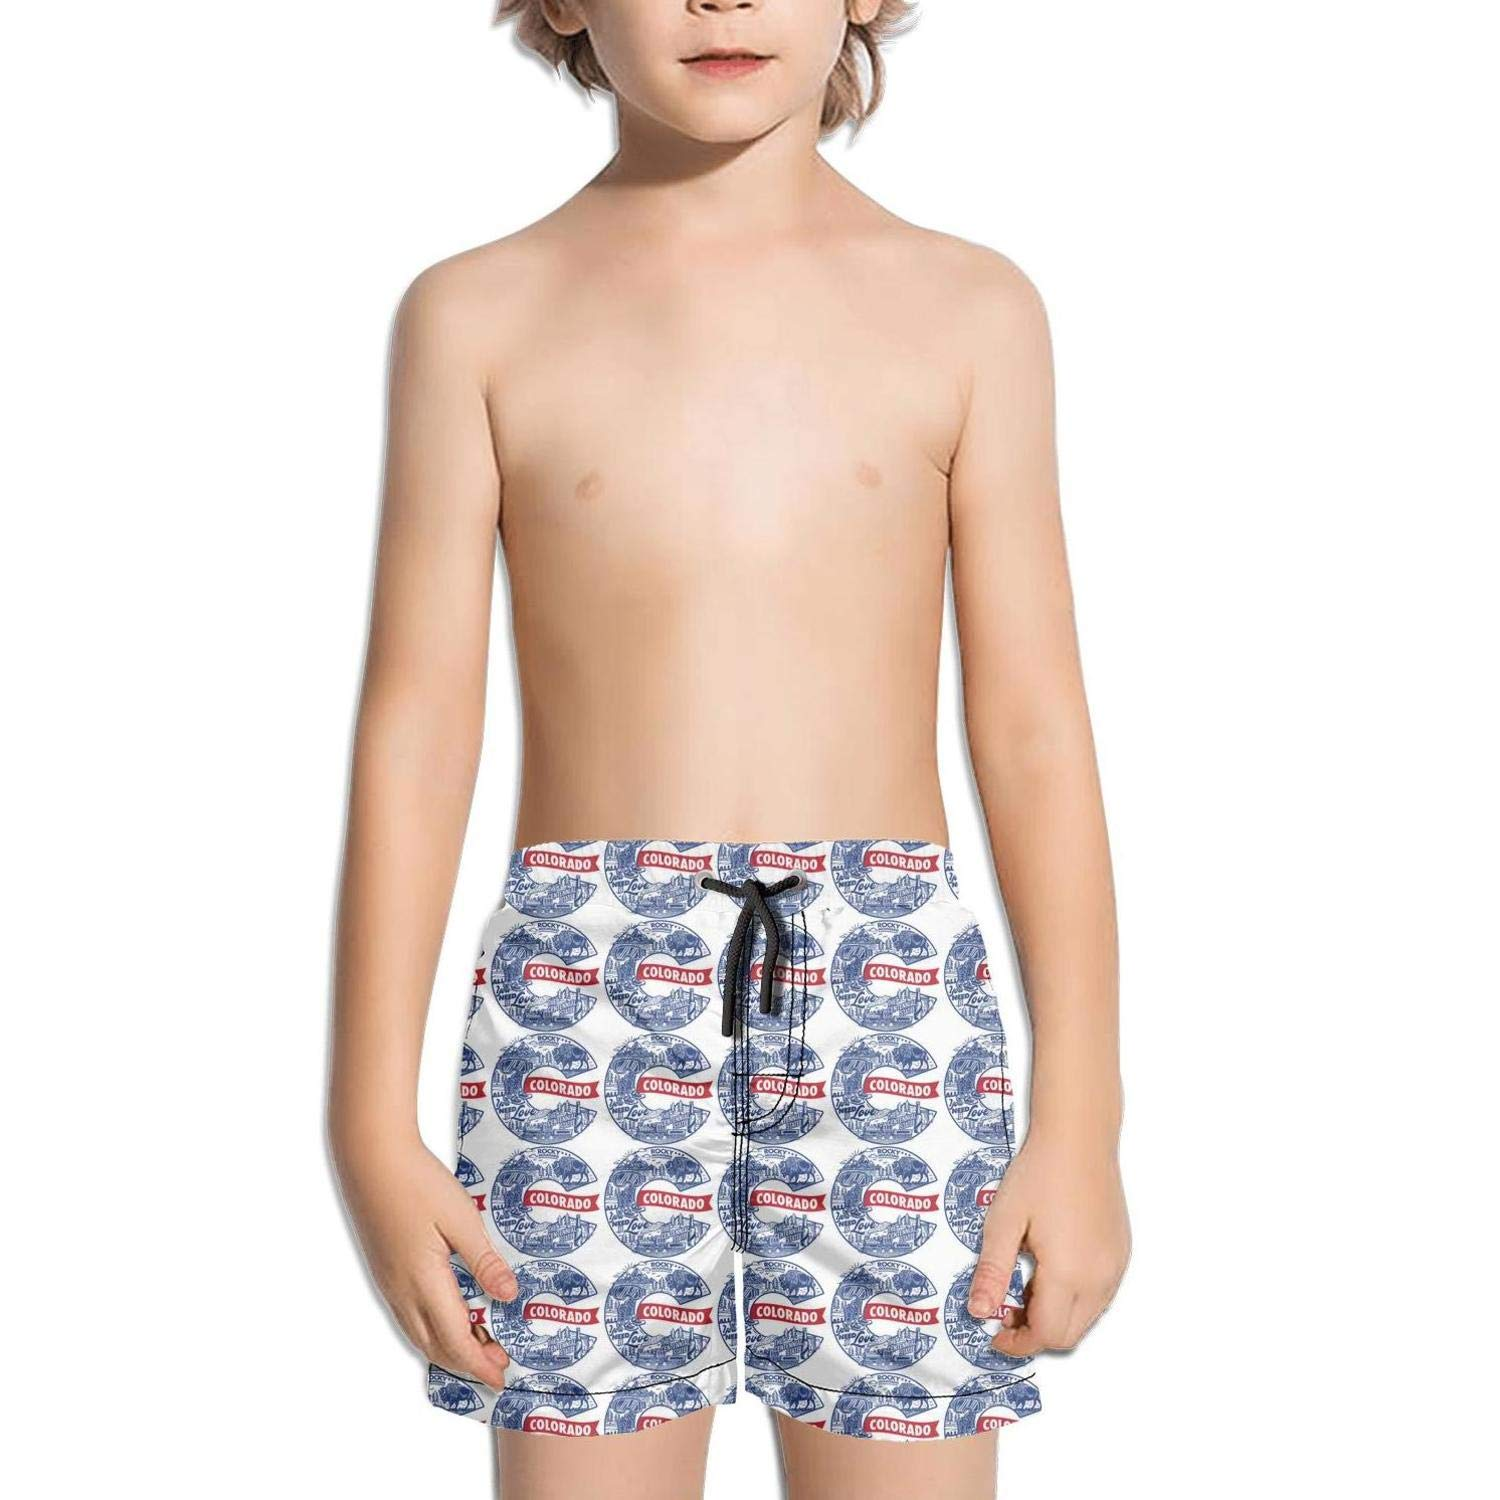 Ina Fers.Quick Dry Swim Trunks Colorado - All You Need is Love Shorts for Boys